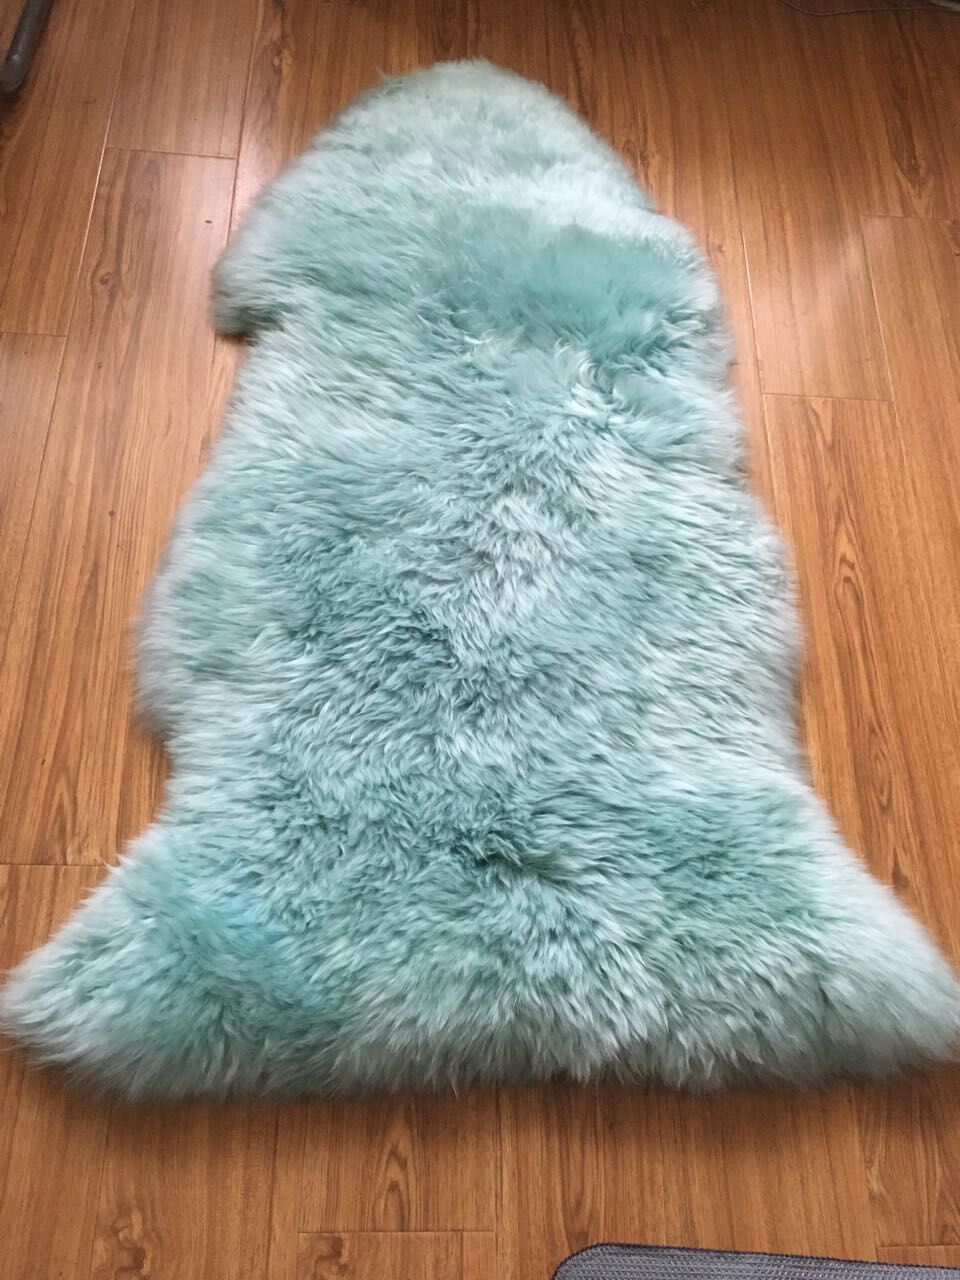 Aliexpress Brown Zealand Australian Wool Area Rugs 2x3 Feet Real Sheepskin Rug Floor Mat Genuine Sofa Cover Chair Pad From